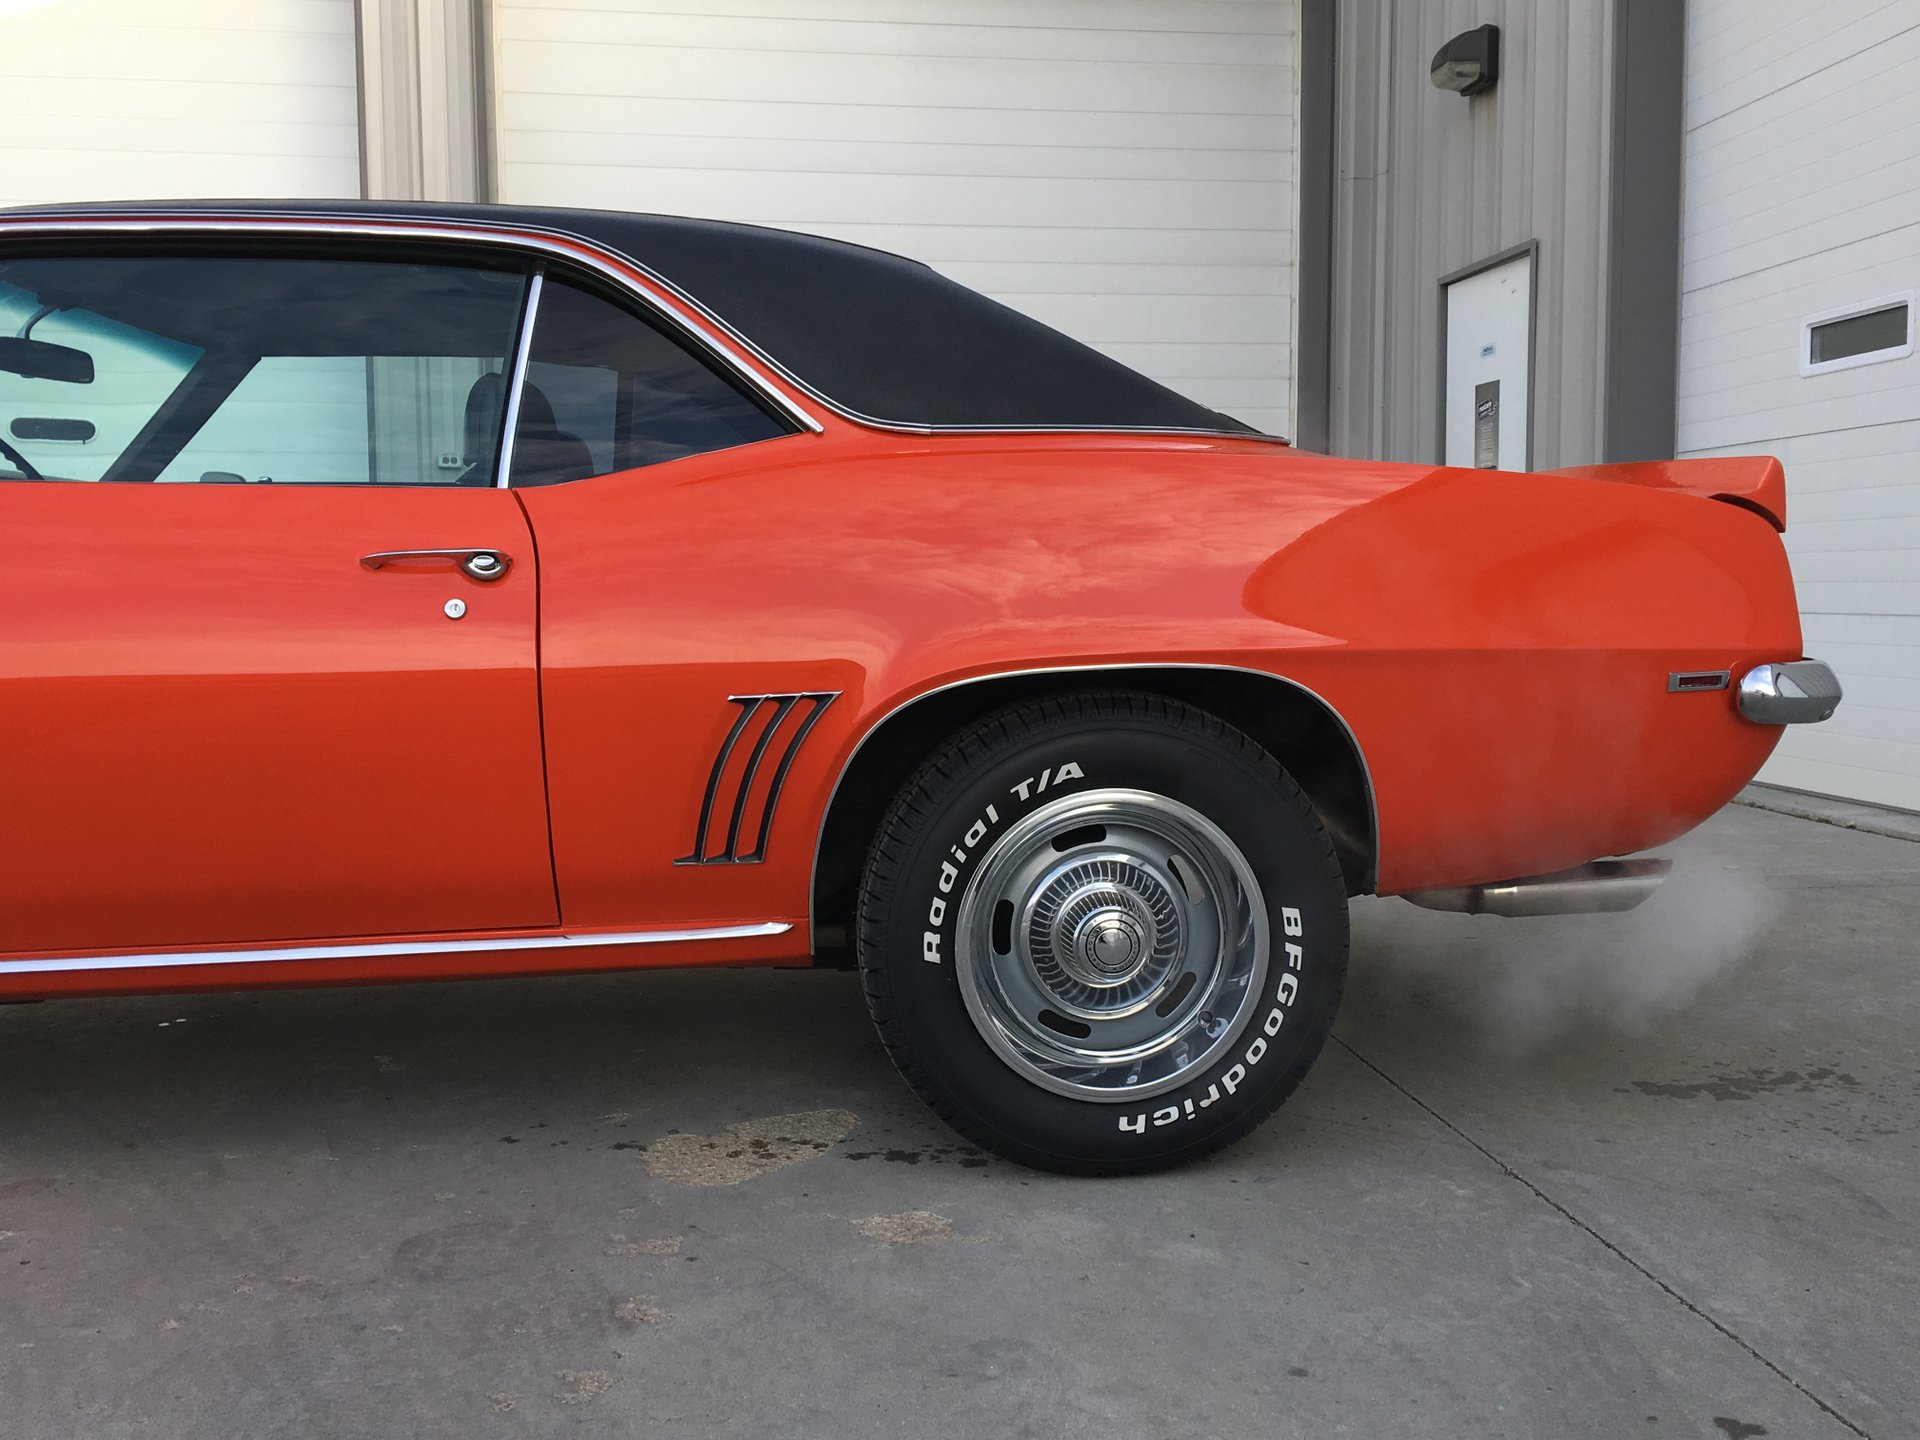 1969 Chevrolet Camaro | Restore A Muscle Car™ LLC